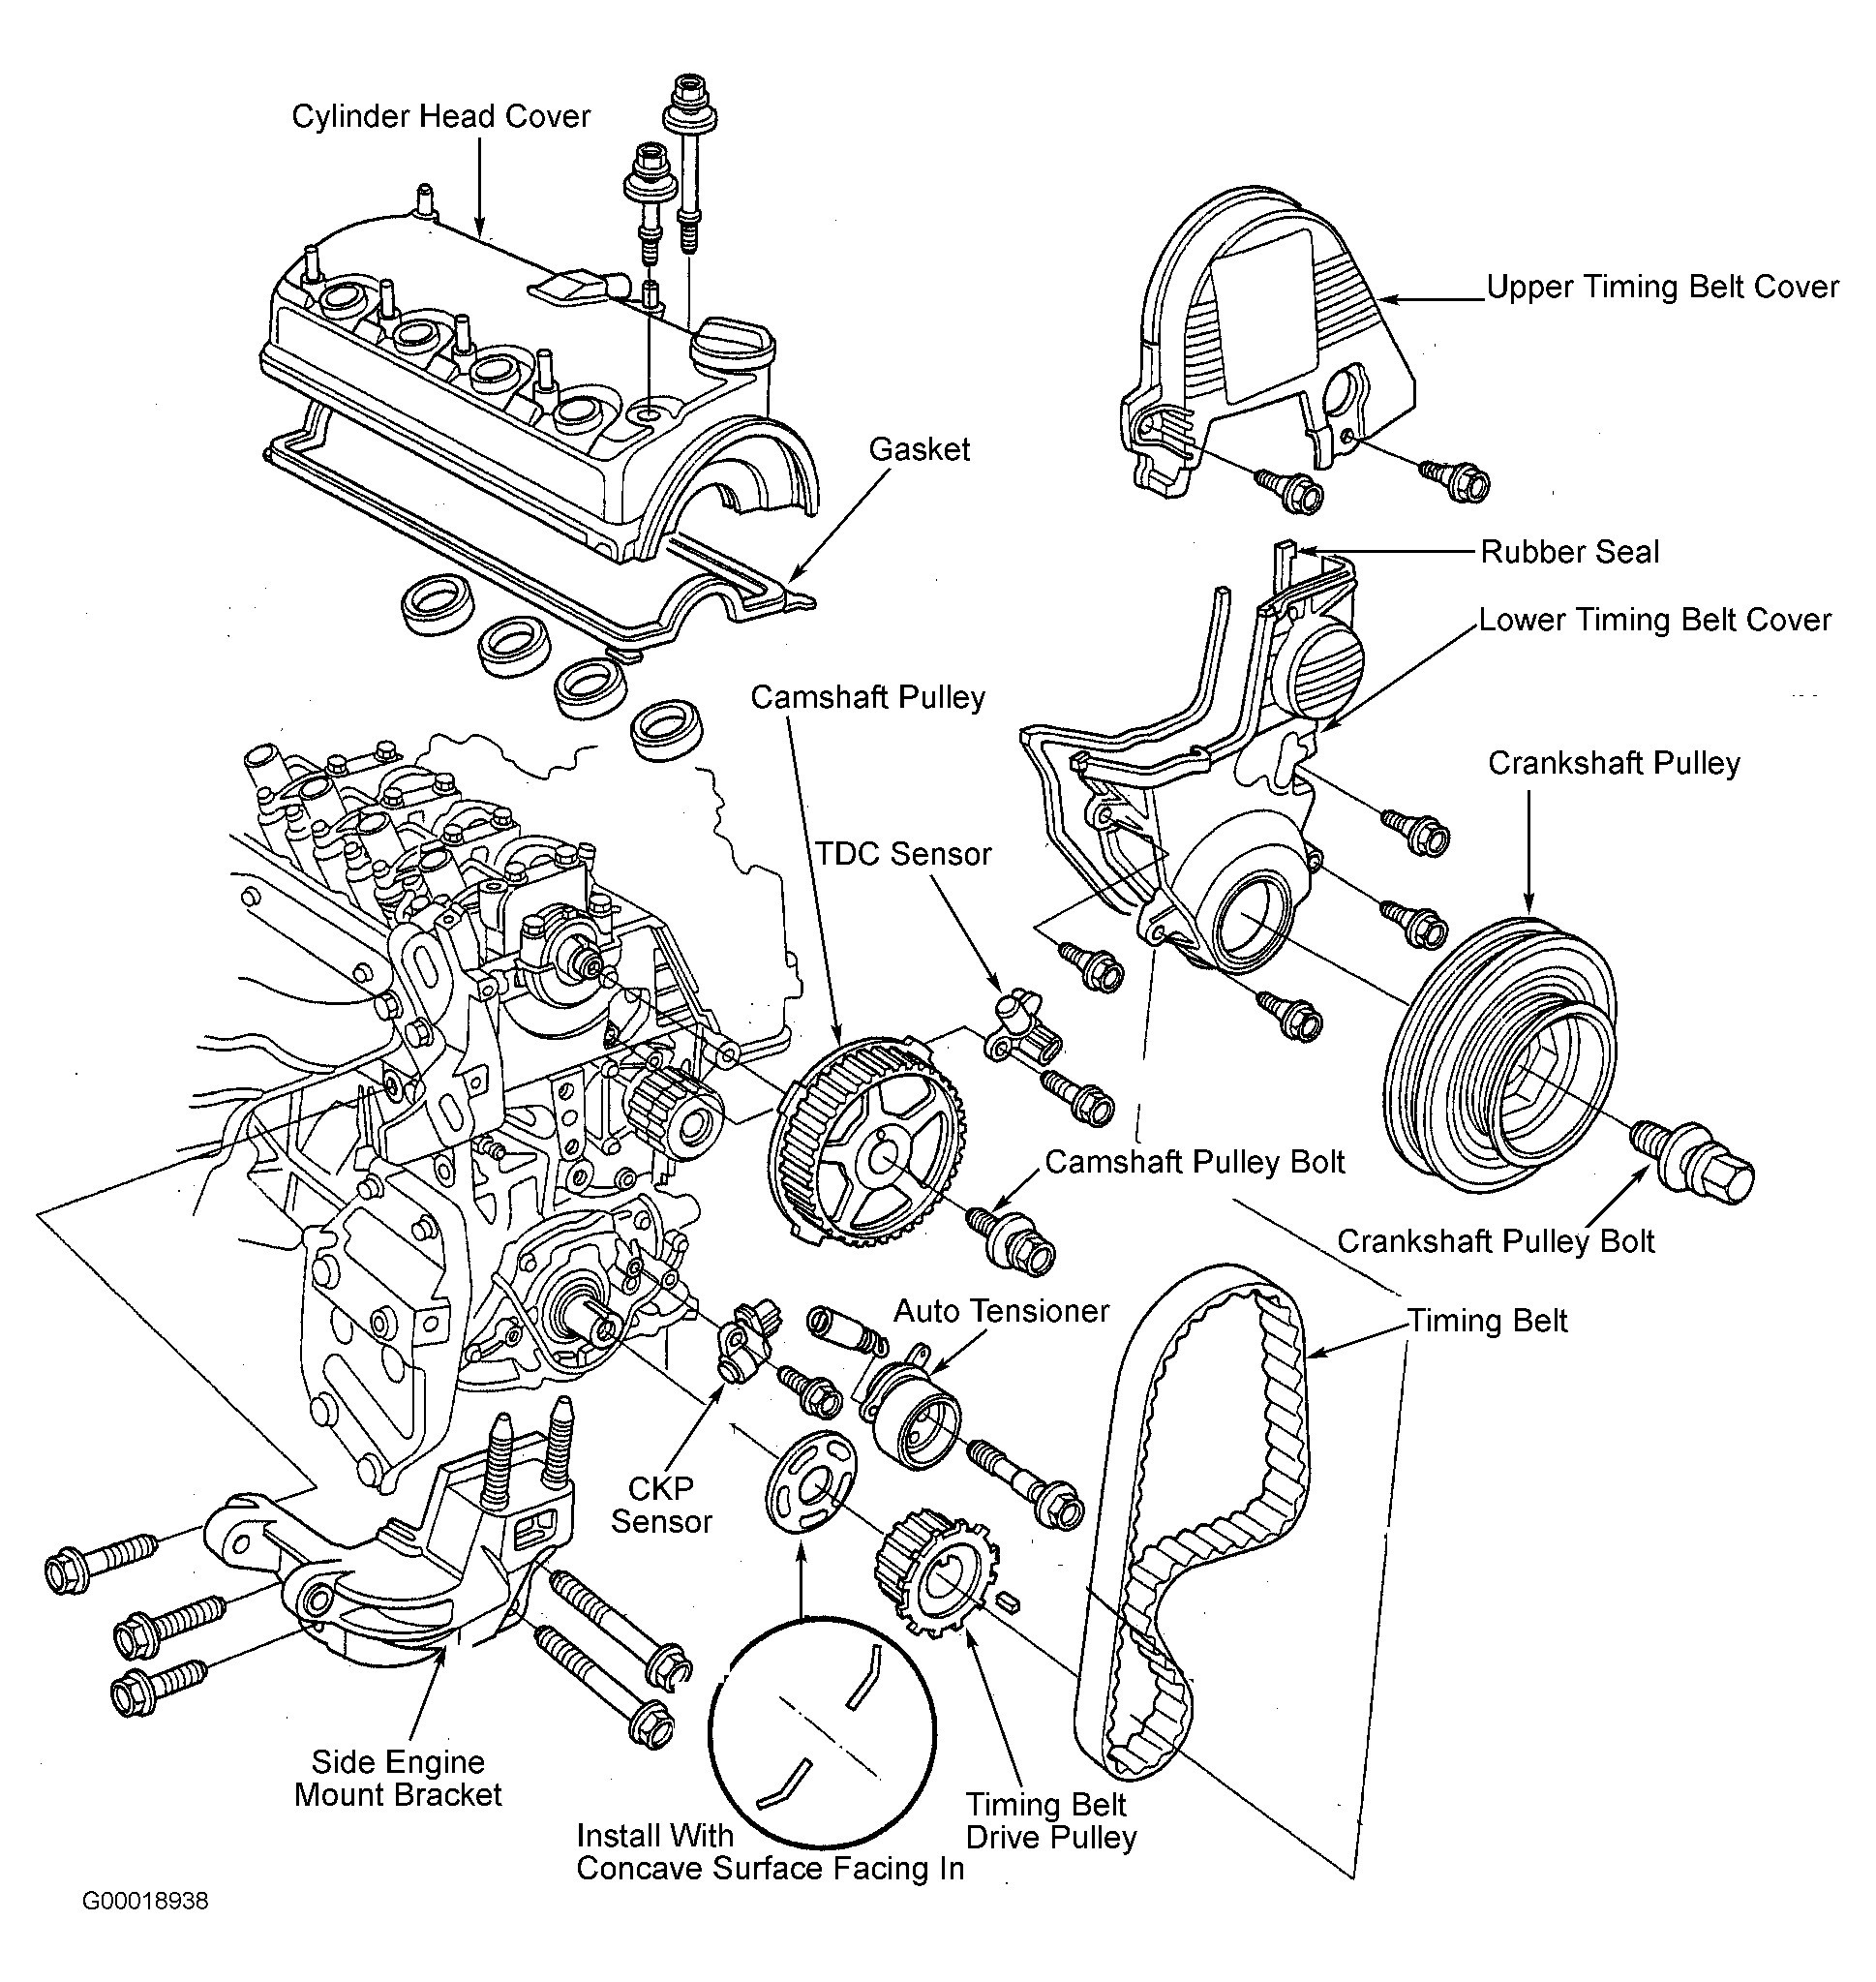 2004 Honda Civic Engine Mounts Diagram - Wiring Diagram All on wiring diagram for 2005 buick lesabre, wiring diagram for 1996 honda accord, wiring diagram for 2002 honda accord, wiring diagram for 2000 honda accord, wiring diagram for 2000 gmc jimmy, wiring diagram for 1997 buick lesabre, wiring diagram for 2006 honda accord, wiring diagram for 1999 jeep grand cherokee, wiring diagram for 1998 honda accord, wiring diagram for 1992 honda civic, wiring diagram for 1998 jeep wrangler, wiring diagram for 1991 honda civic,